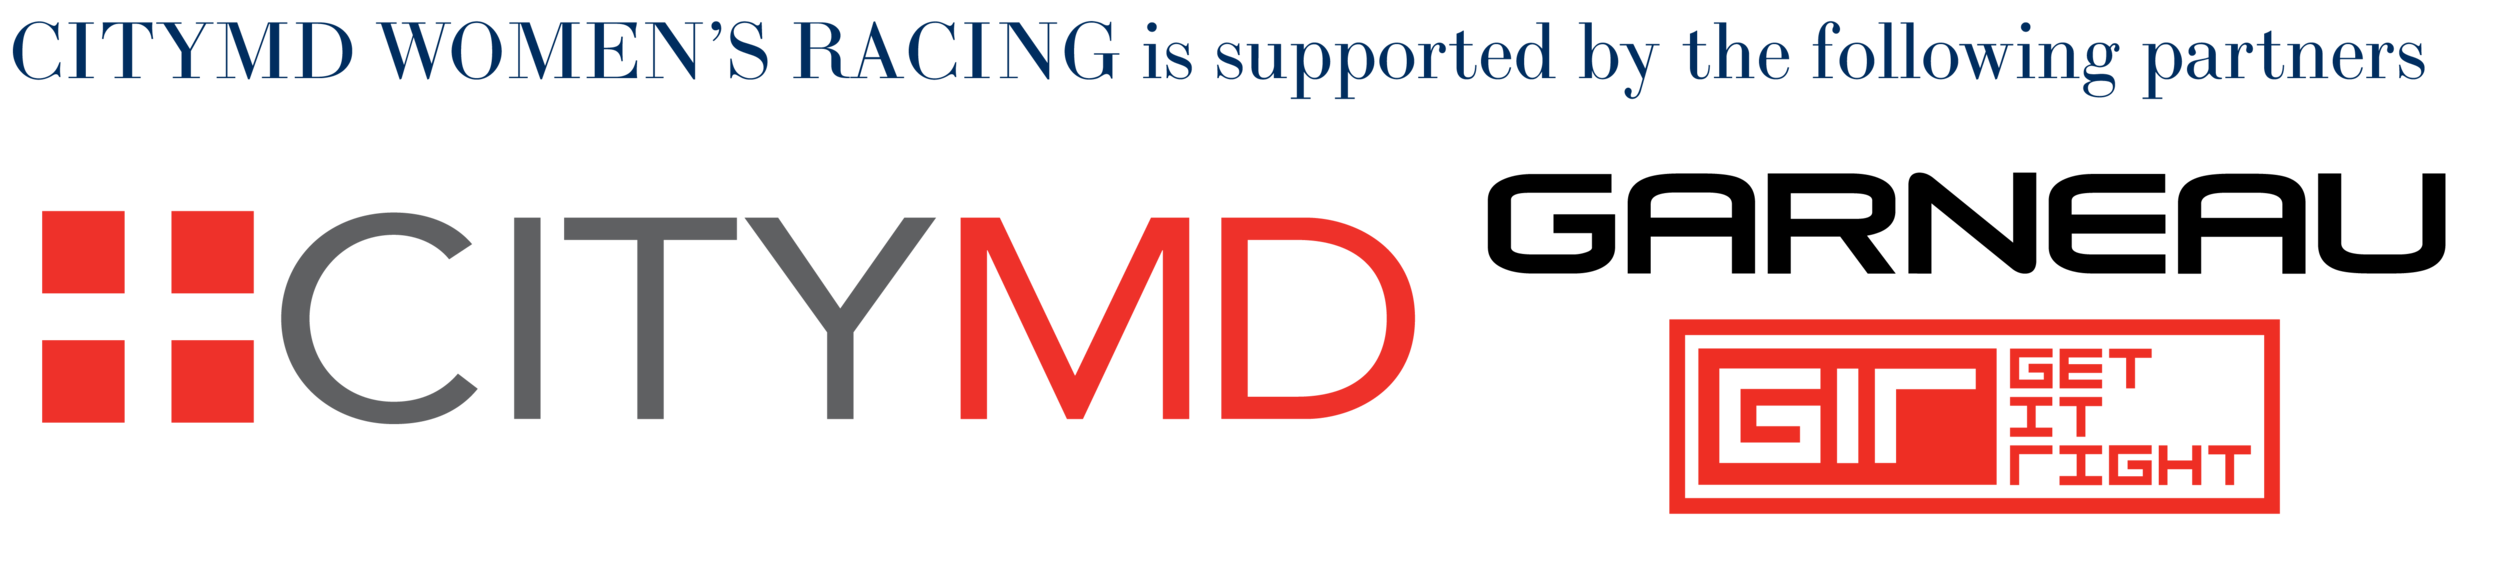 CITYMD Sponsors 2017.png